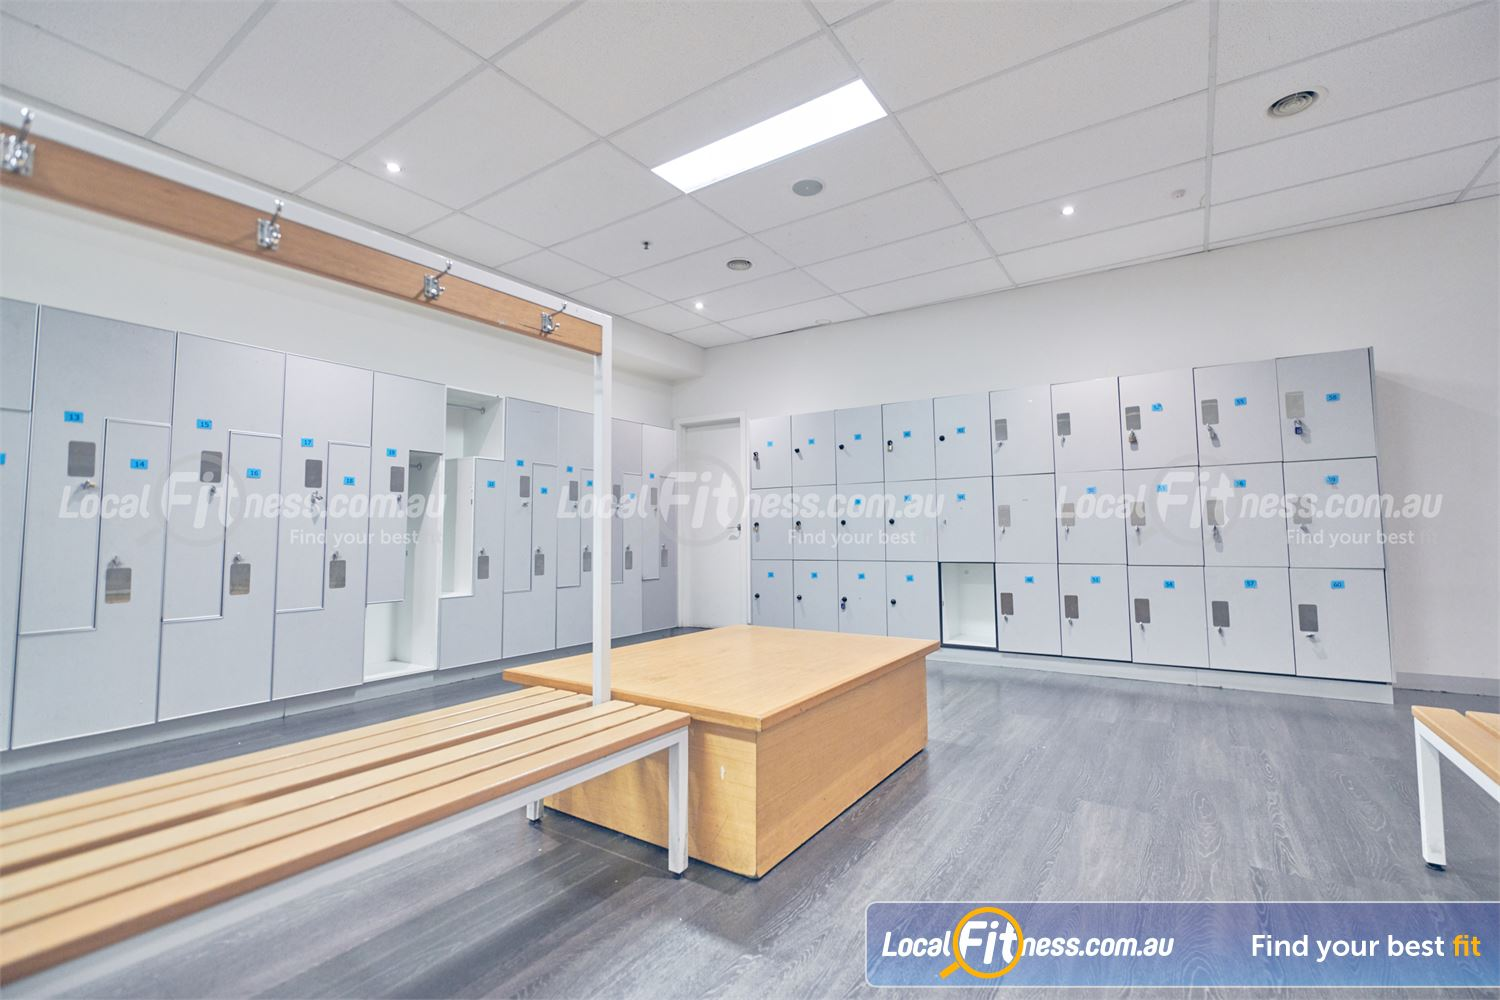 Goodlife Health Clubs Near St Kilda Spacious lockers to store your belongings while you train.